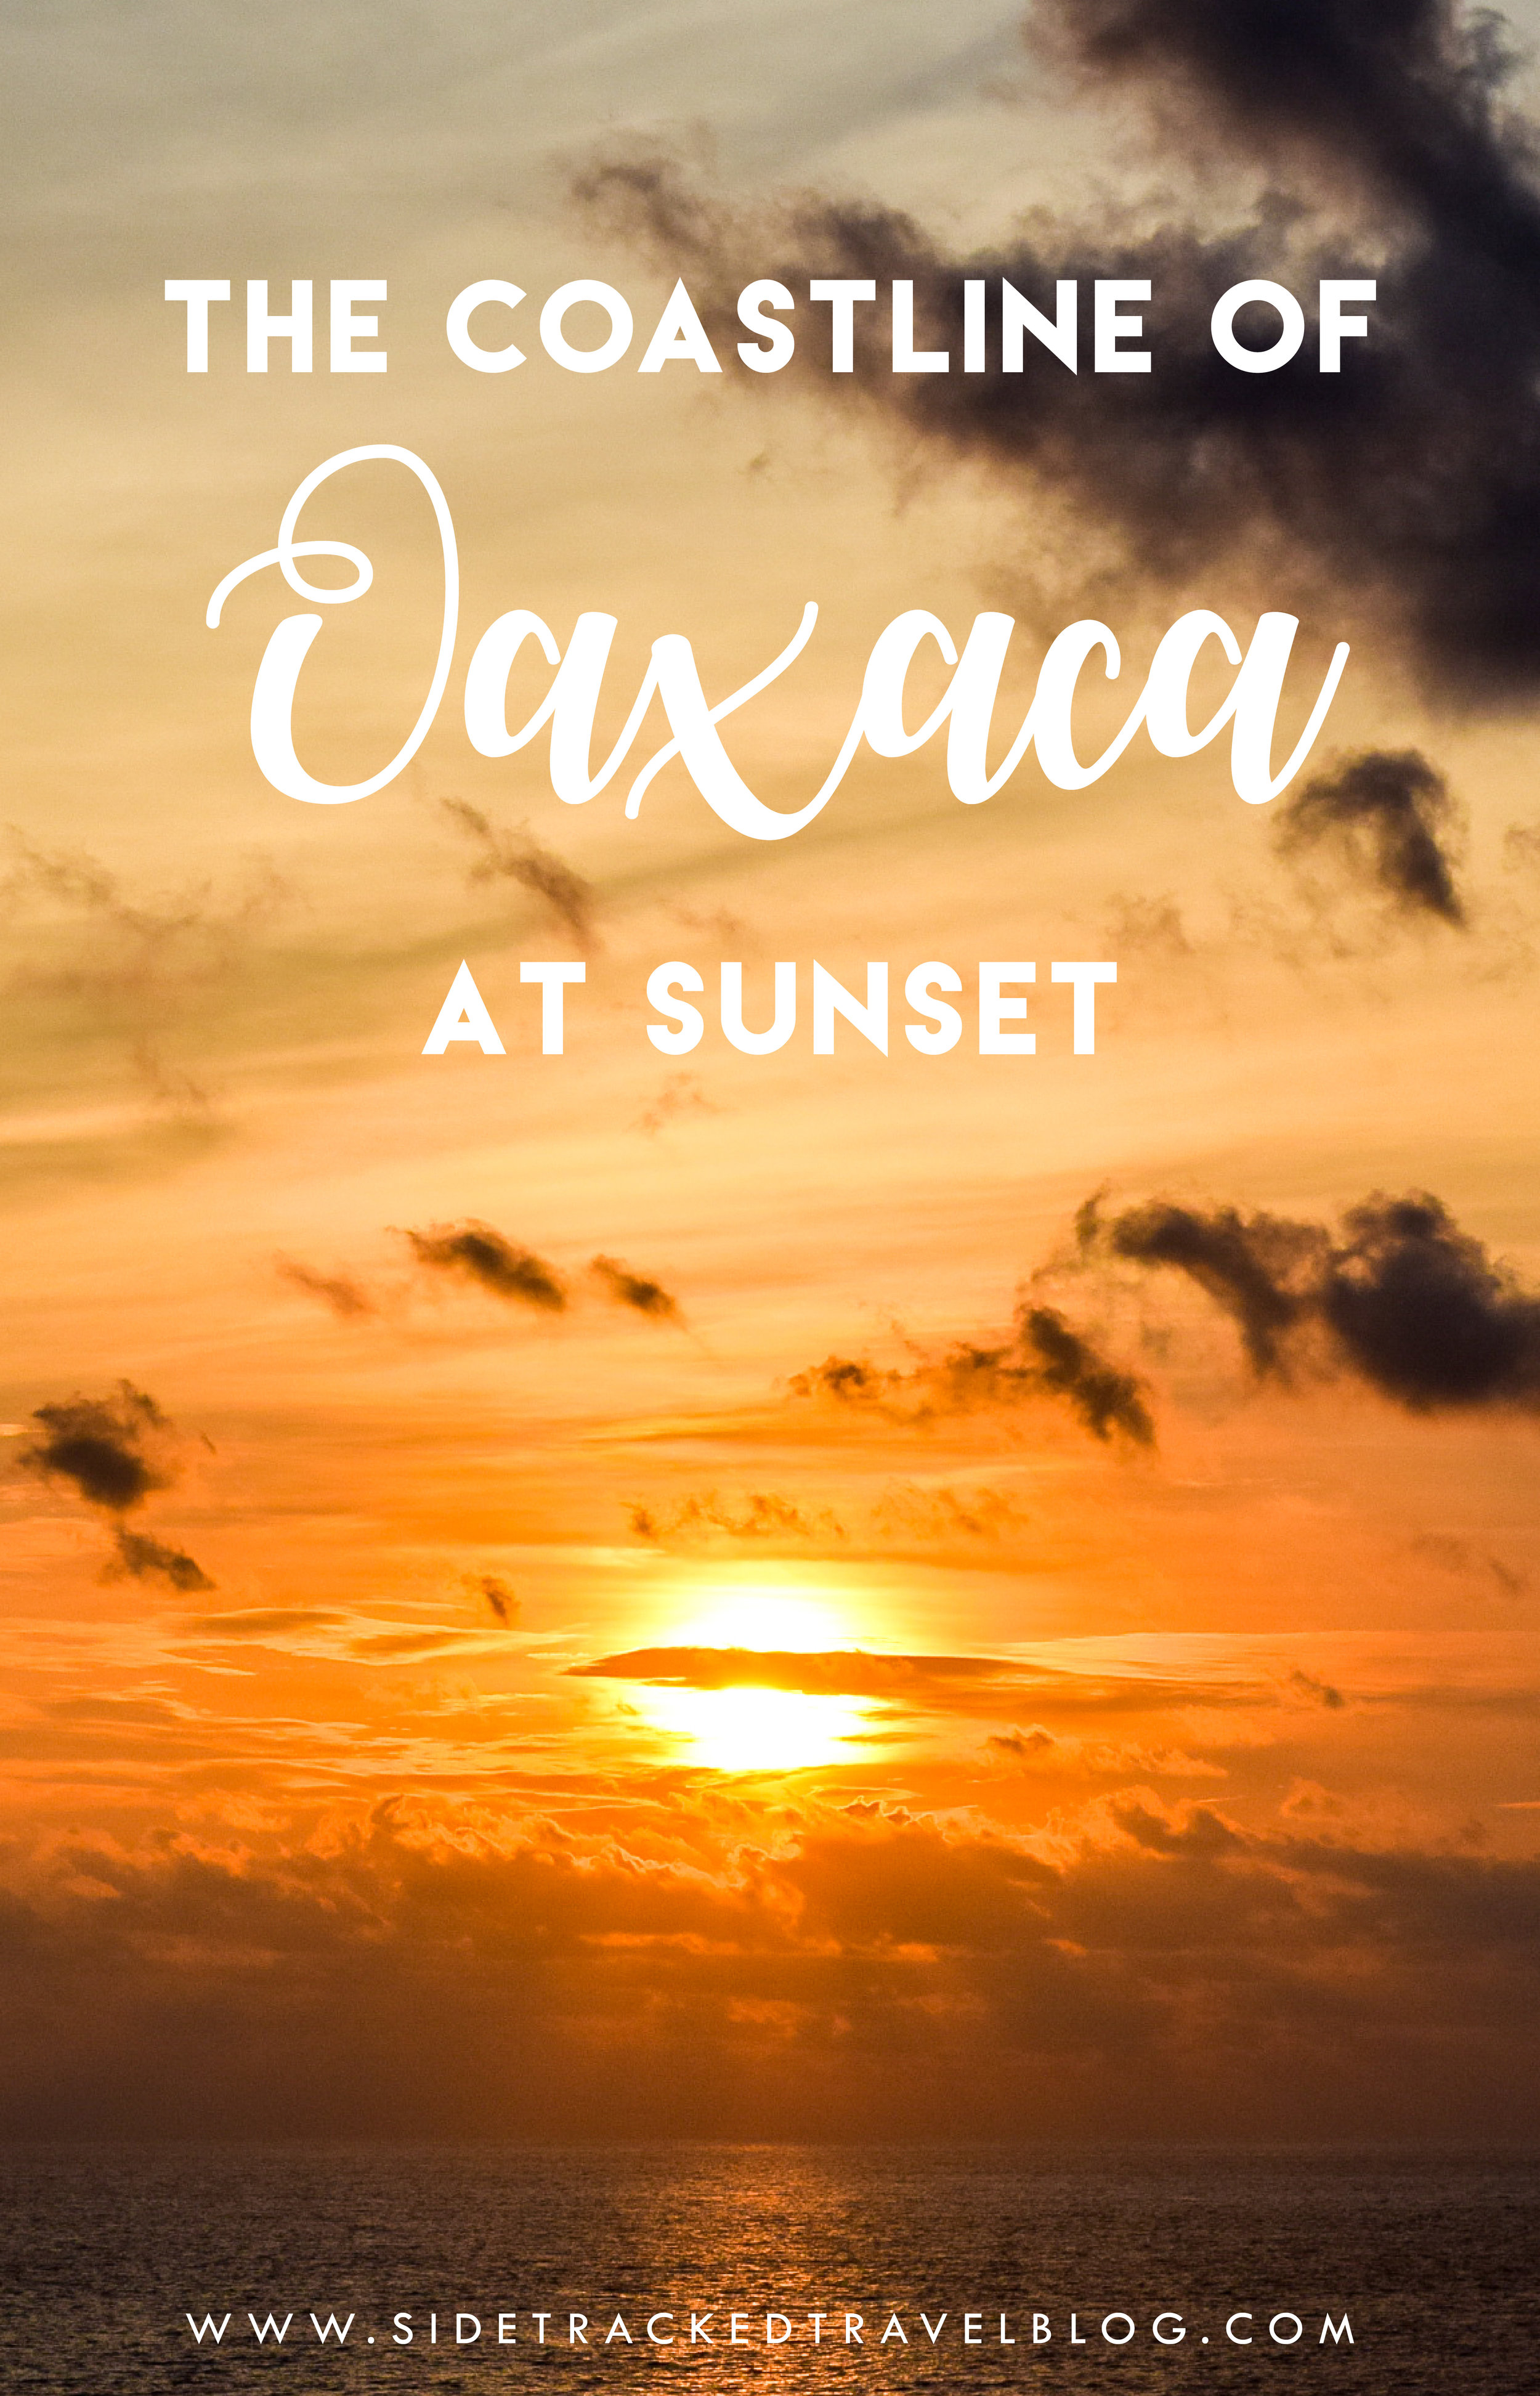 I have been extremely lucky to see some completely breathtaking sunsets throughout my travels.However, I think it's safe to say that one place beats out all the rest: Oaxaca, a Mexican state on the Pacific coast.